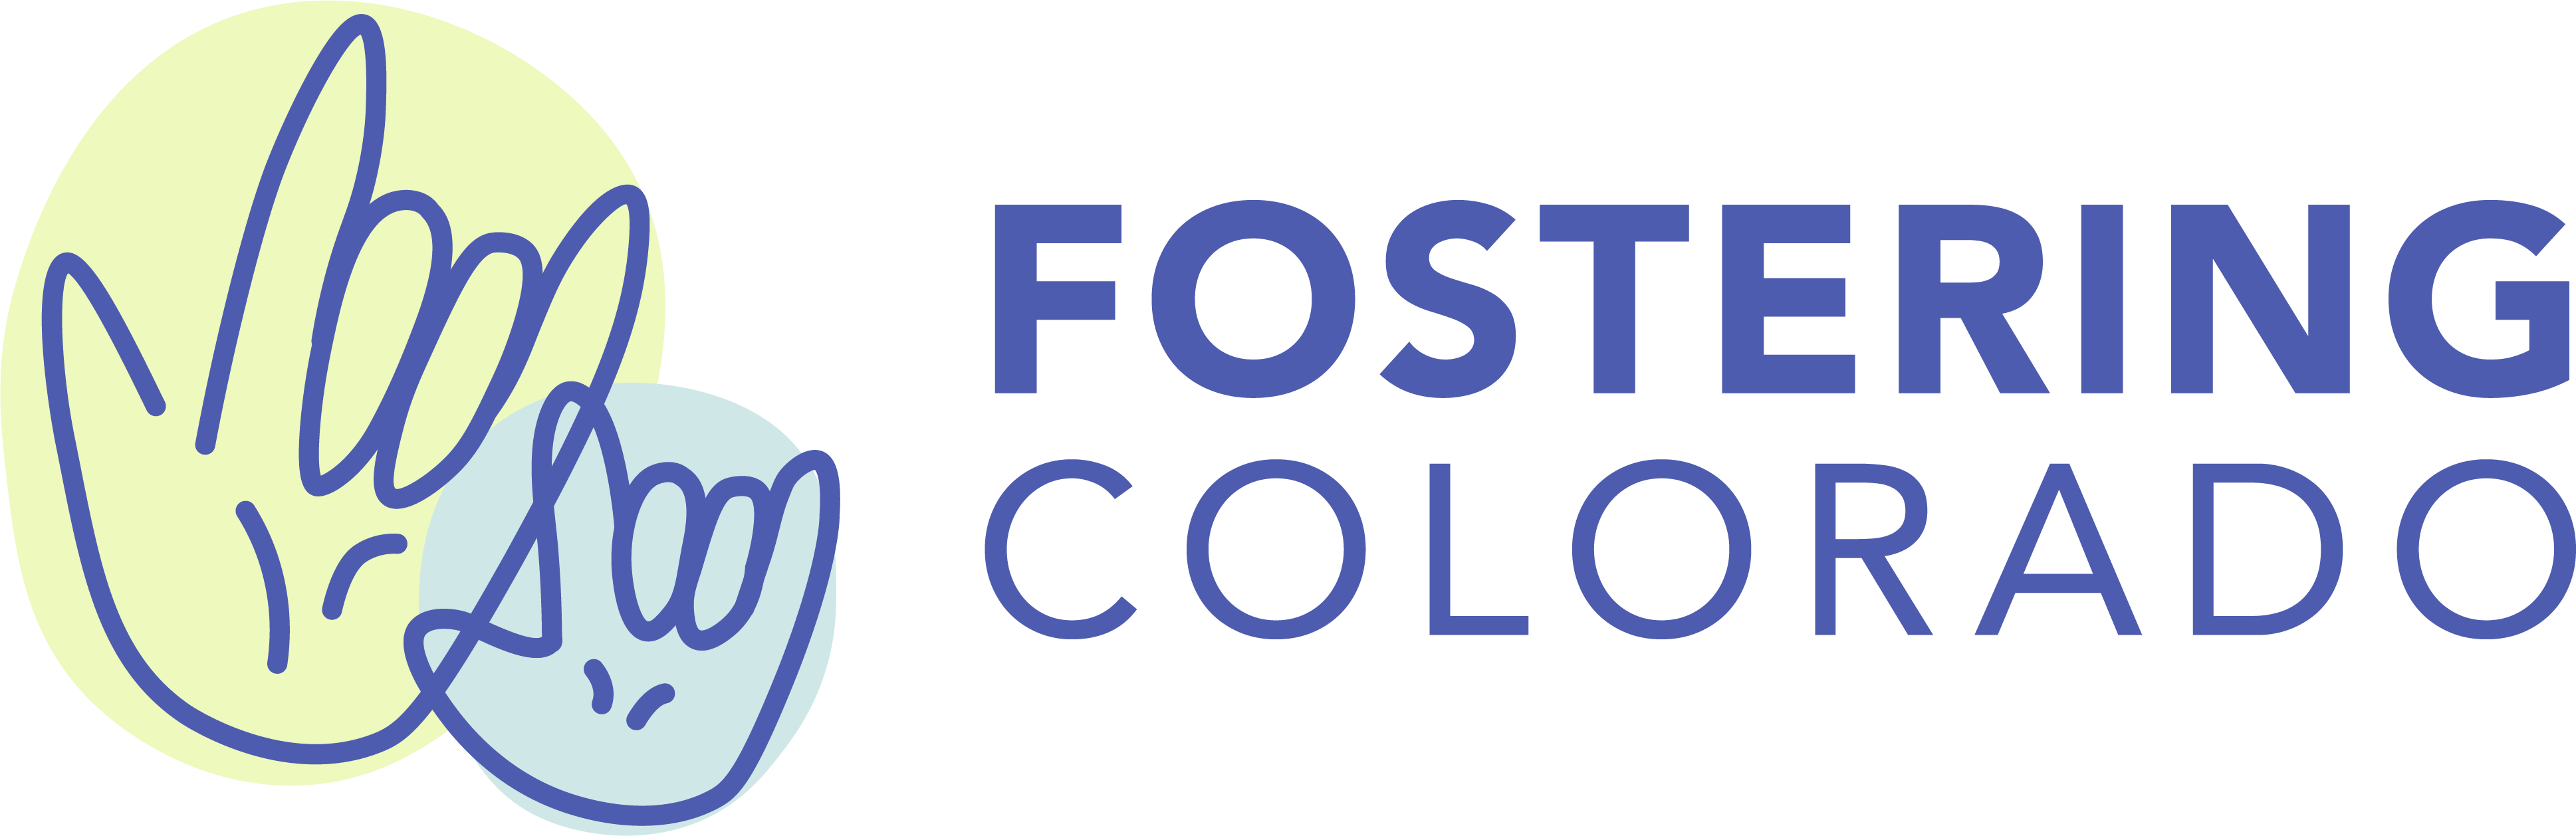 Fostering Colorado